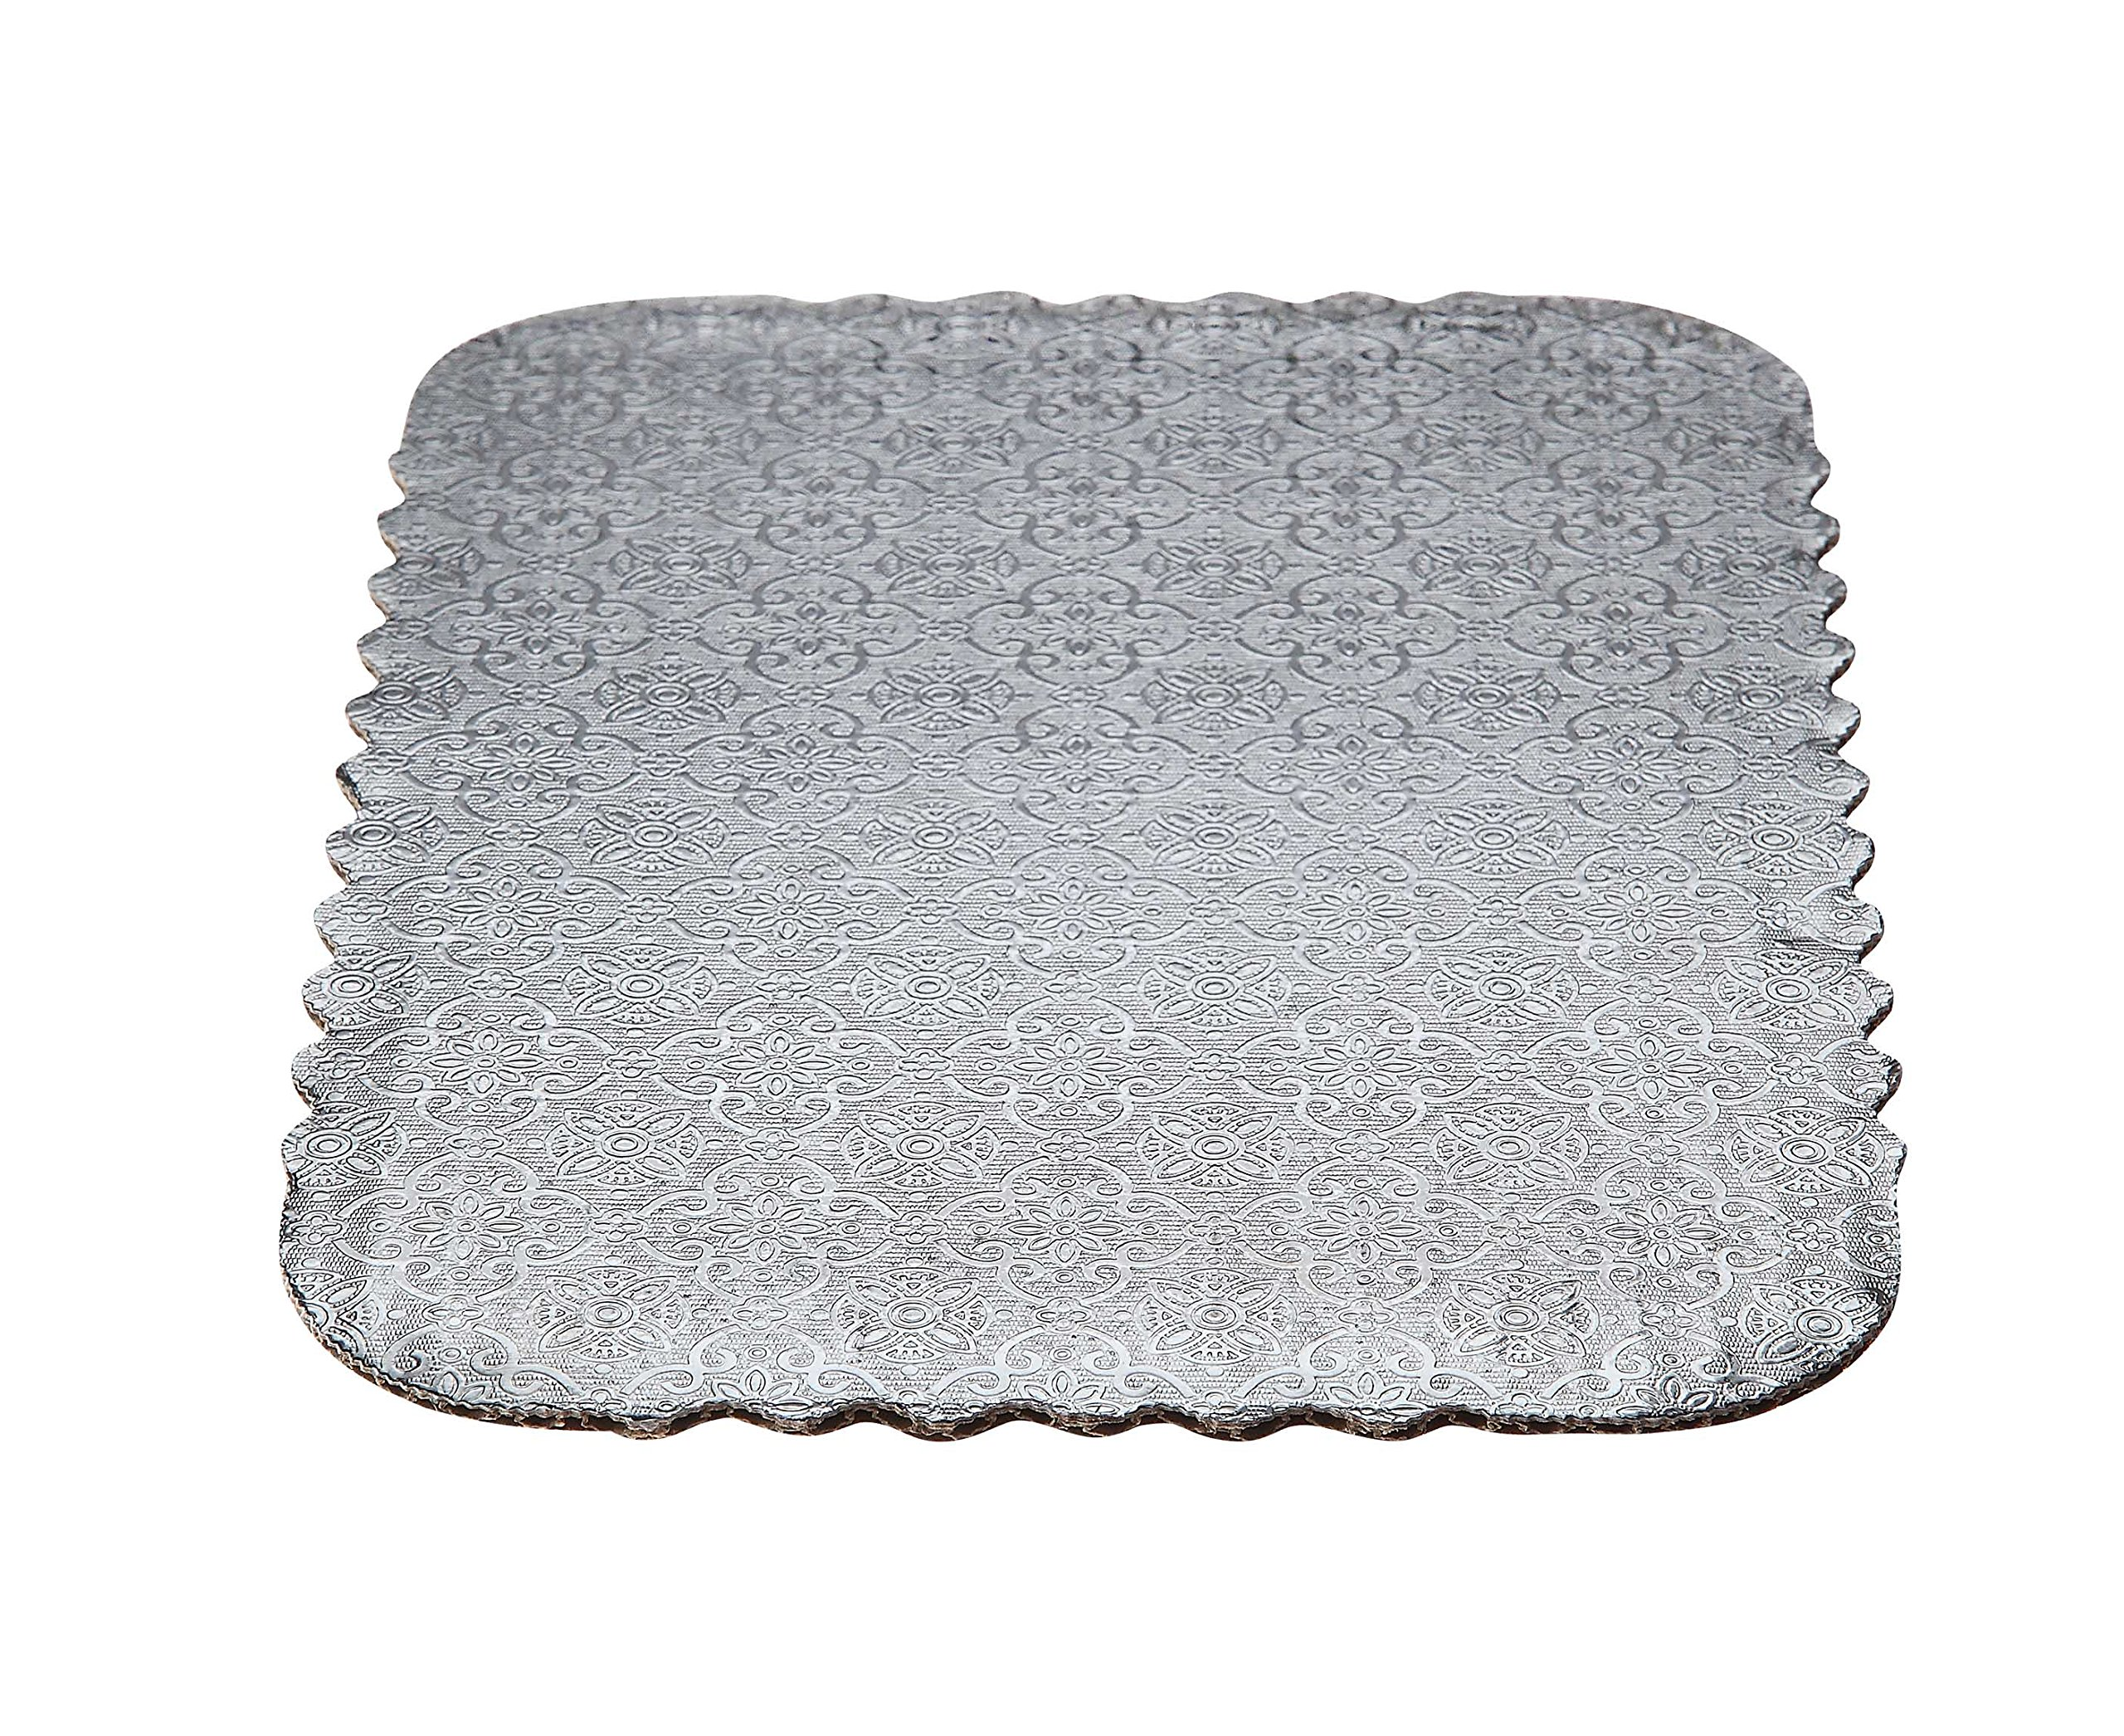 W PACKAGING WPSD4325 1/4 Sheet (13.5x9) Silver Double Wall Scalloped Edge Cake Pad, Corrugated with Coated Embossed Foil Paper (Pack of 50)